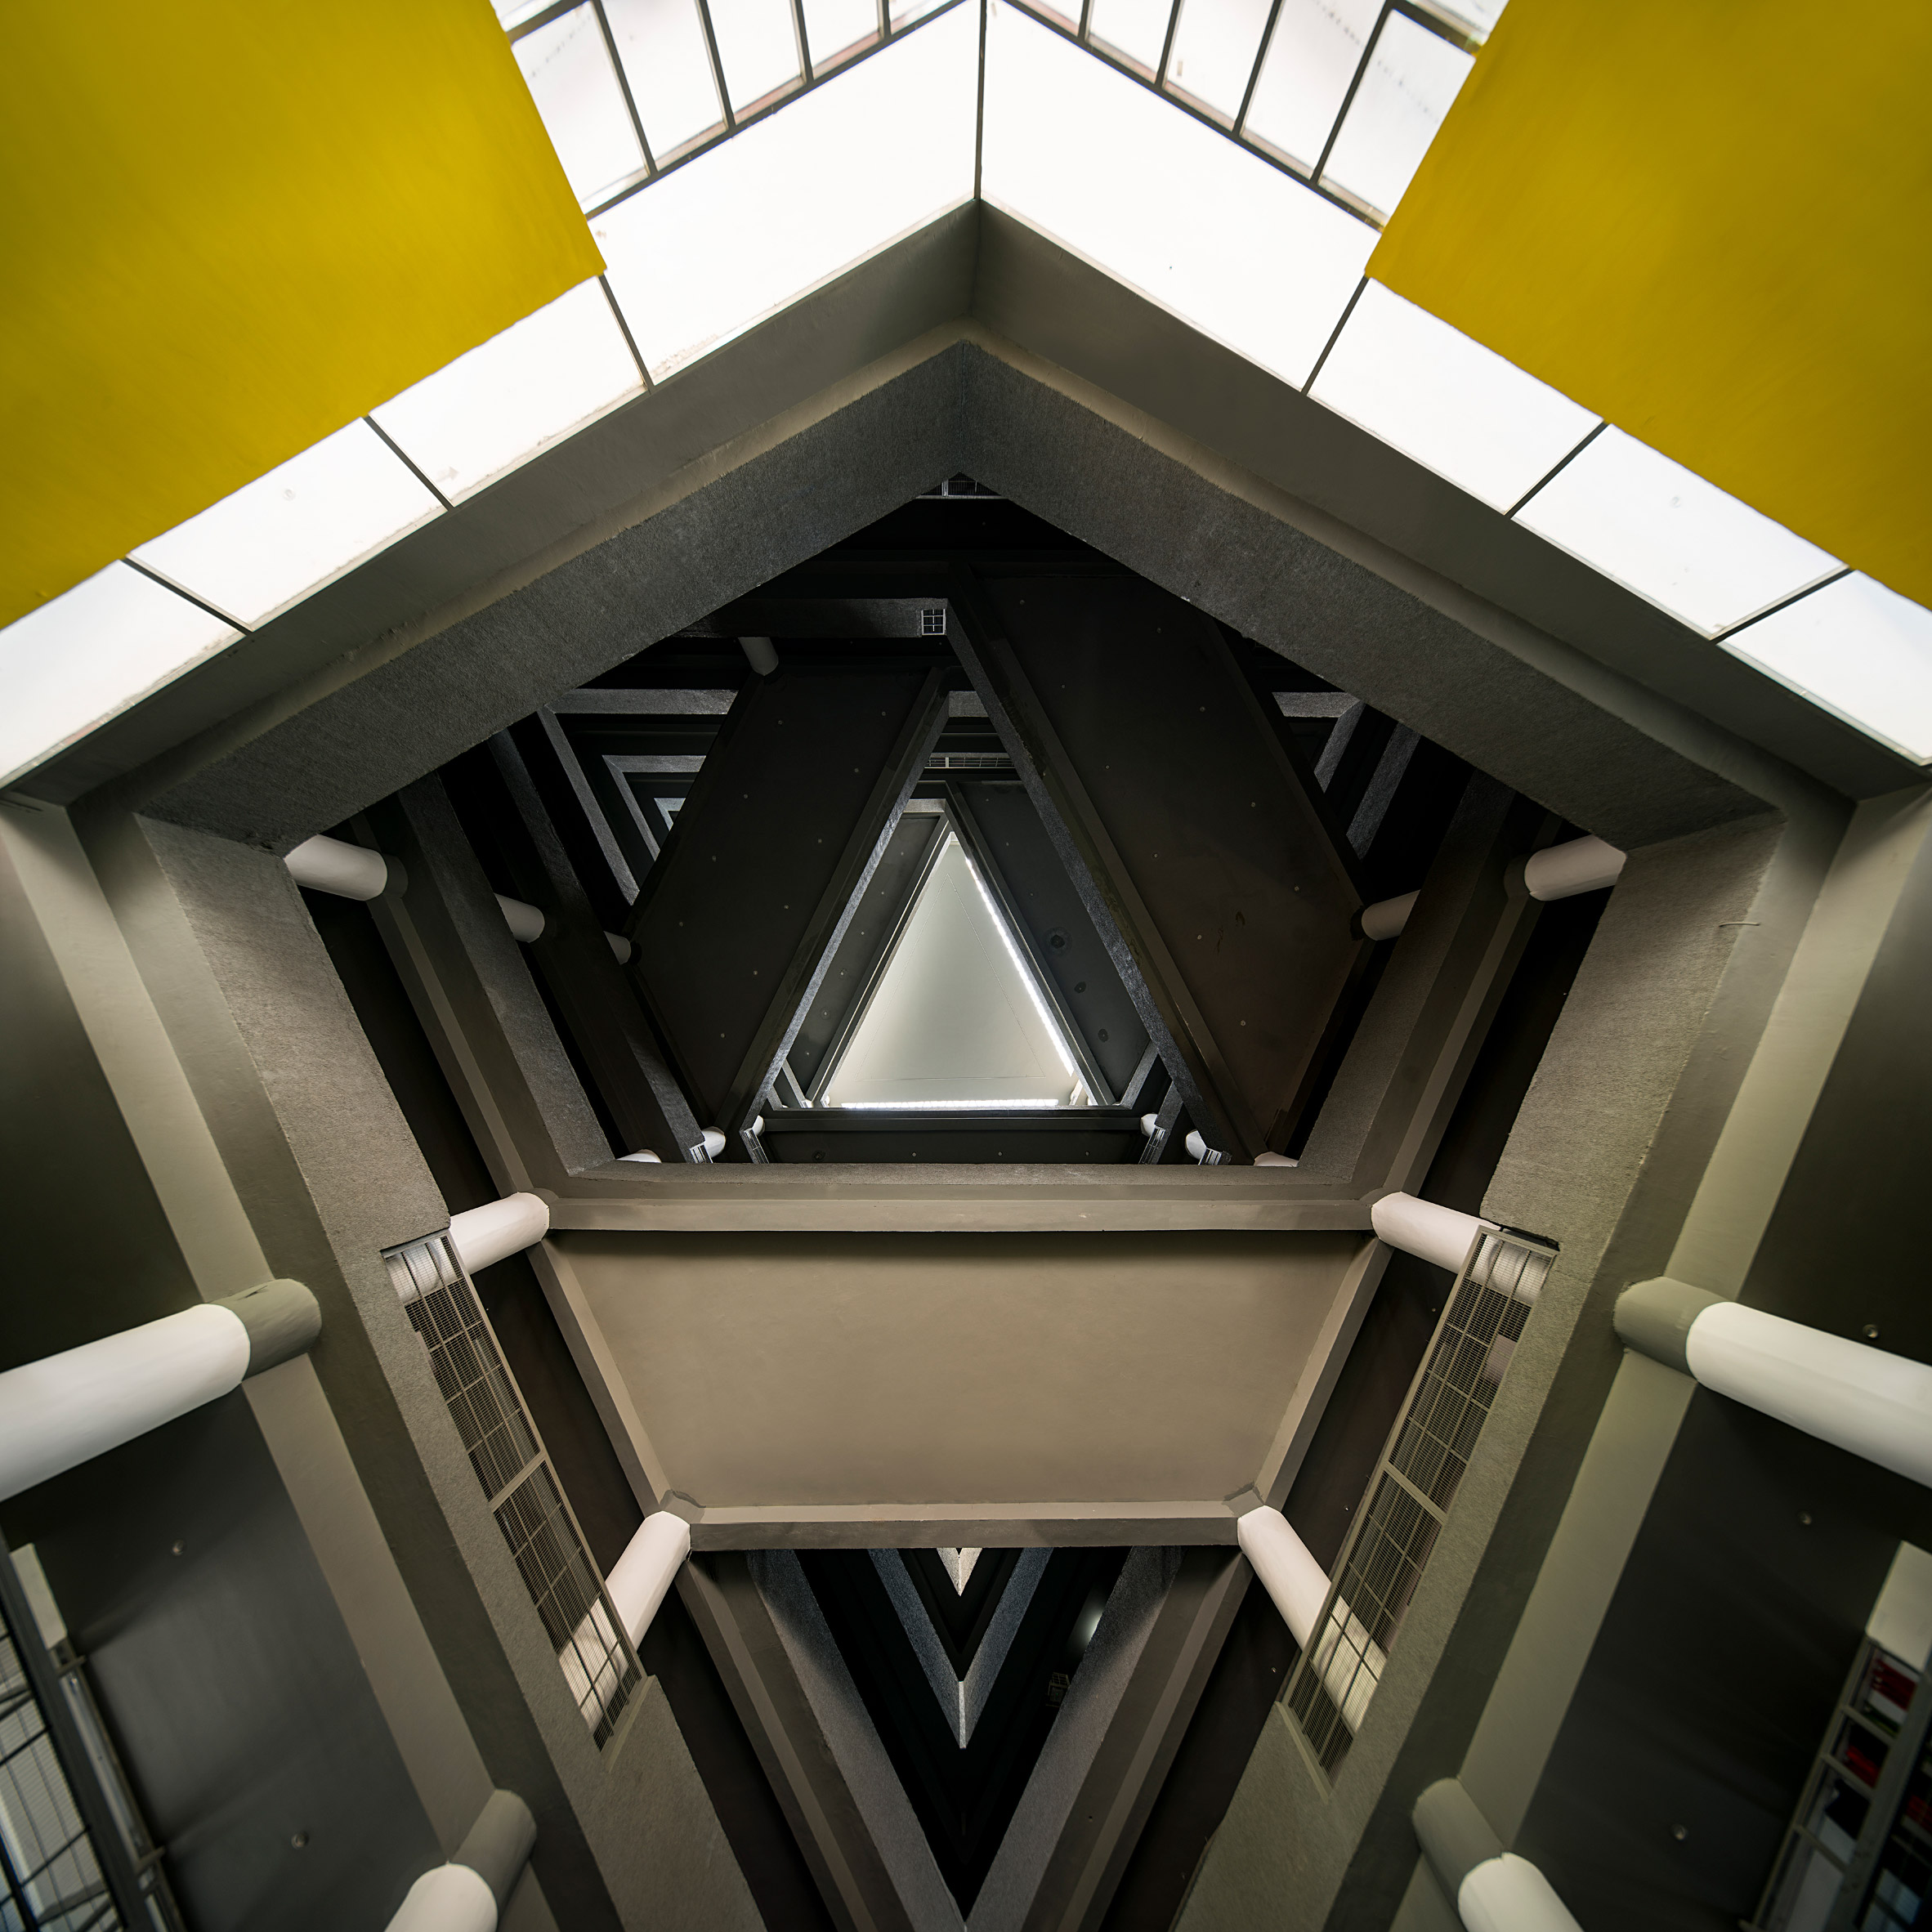 An angular atrium with crisscrossing bridges